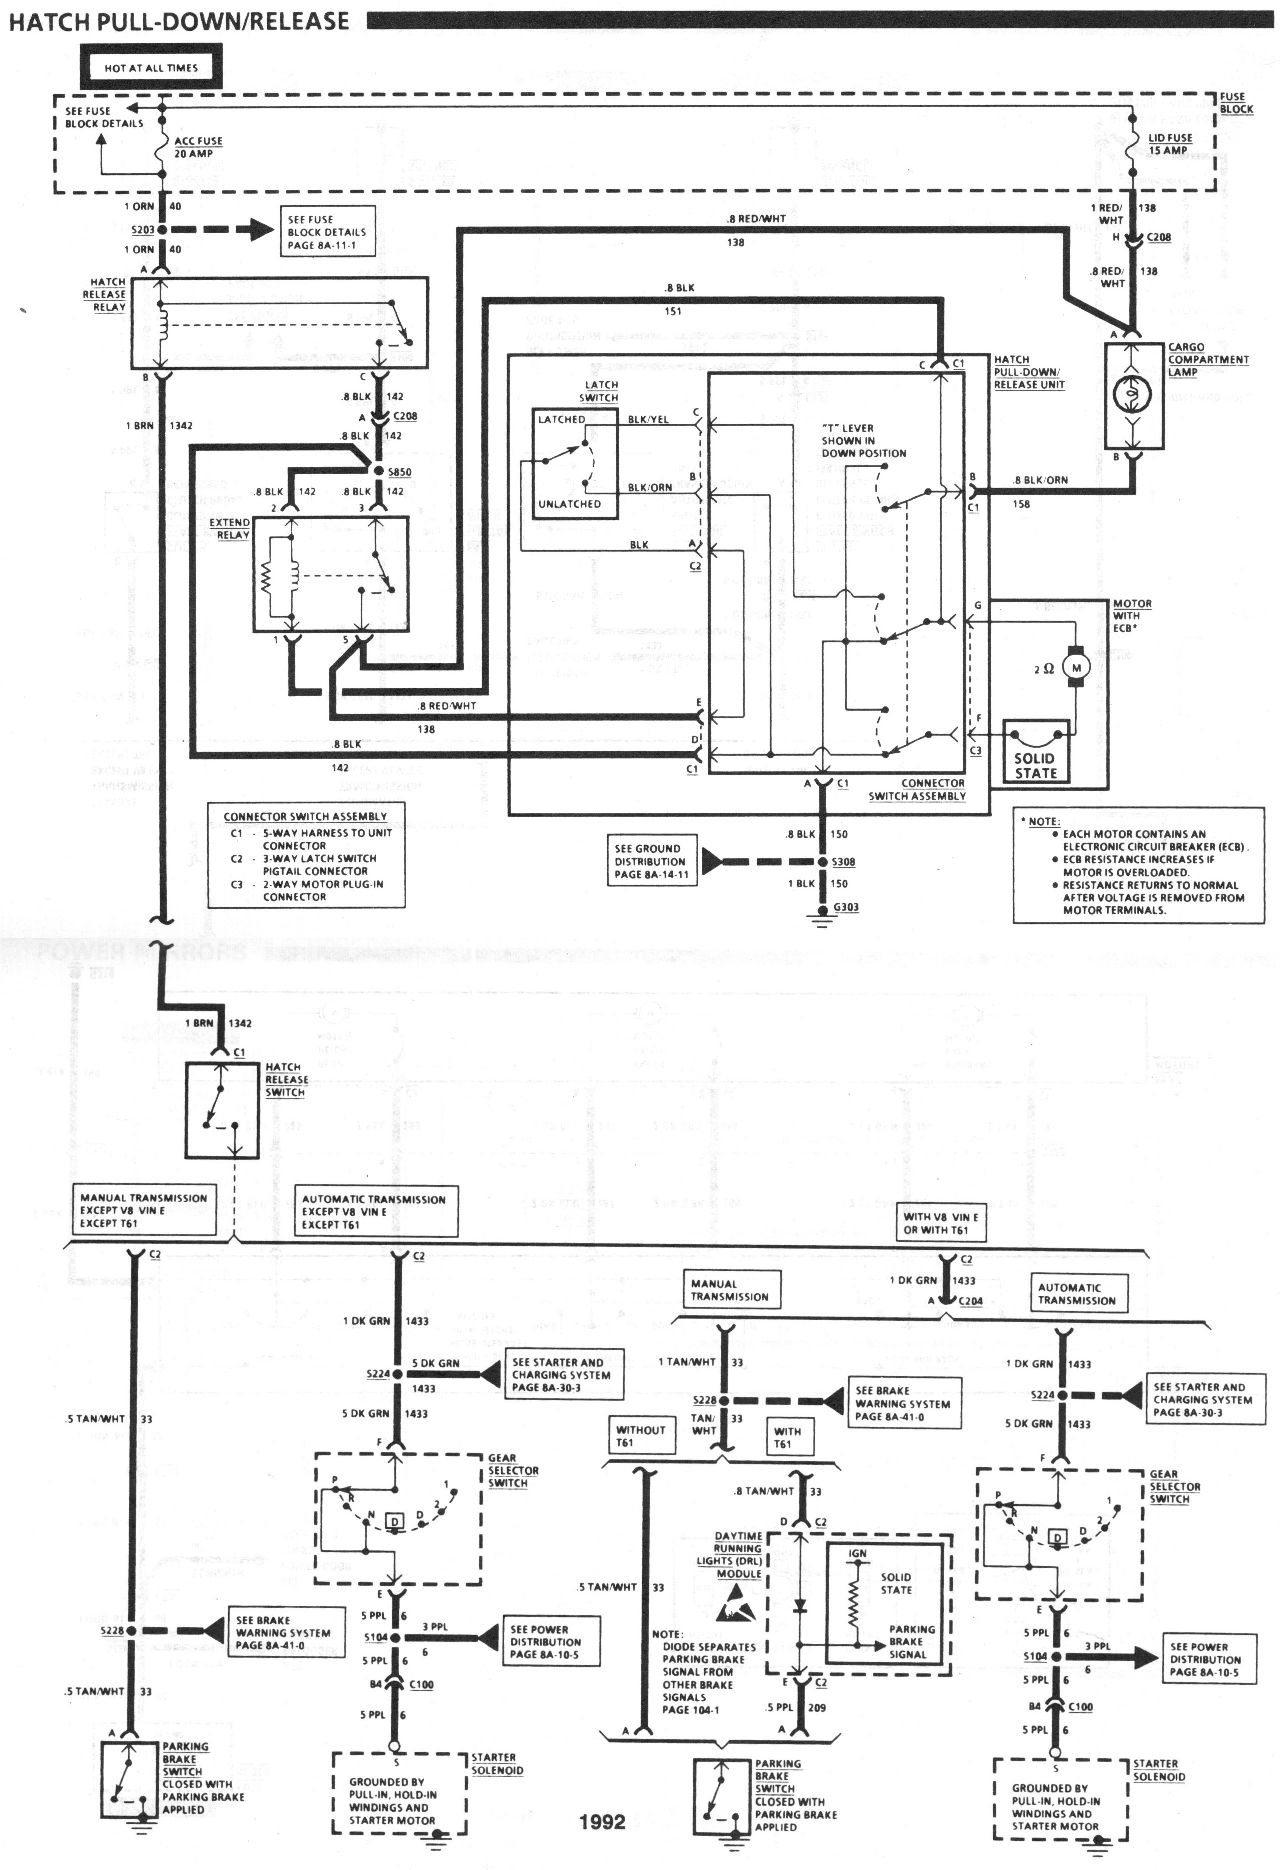 1985 chevrolet camaro ignition wiring diagram